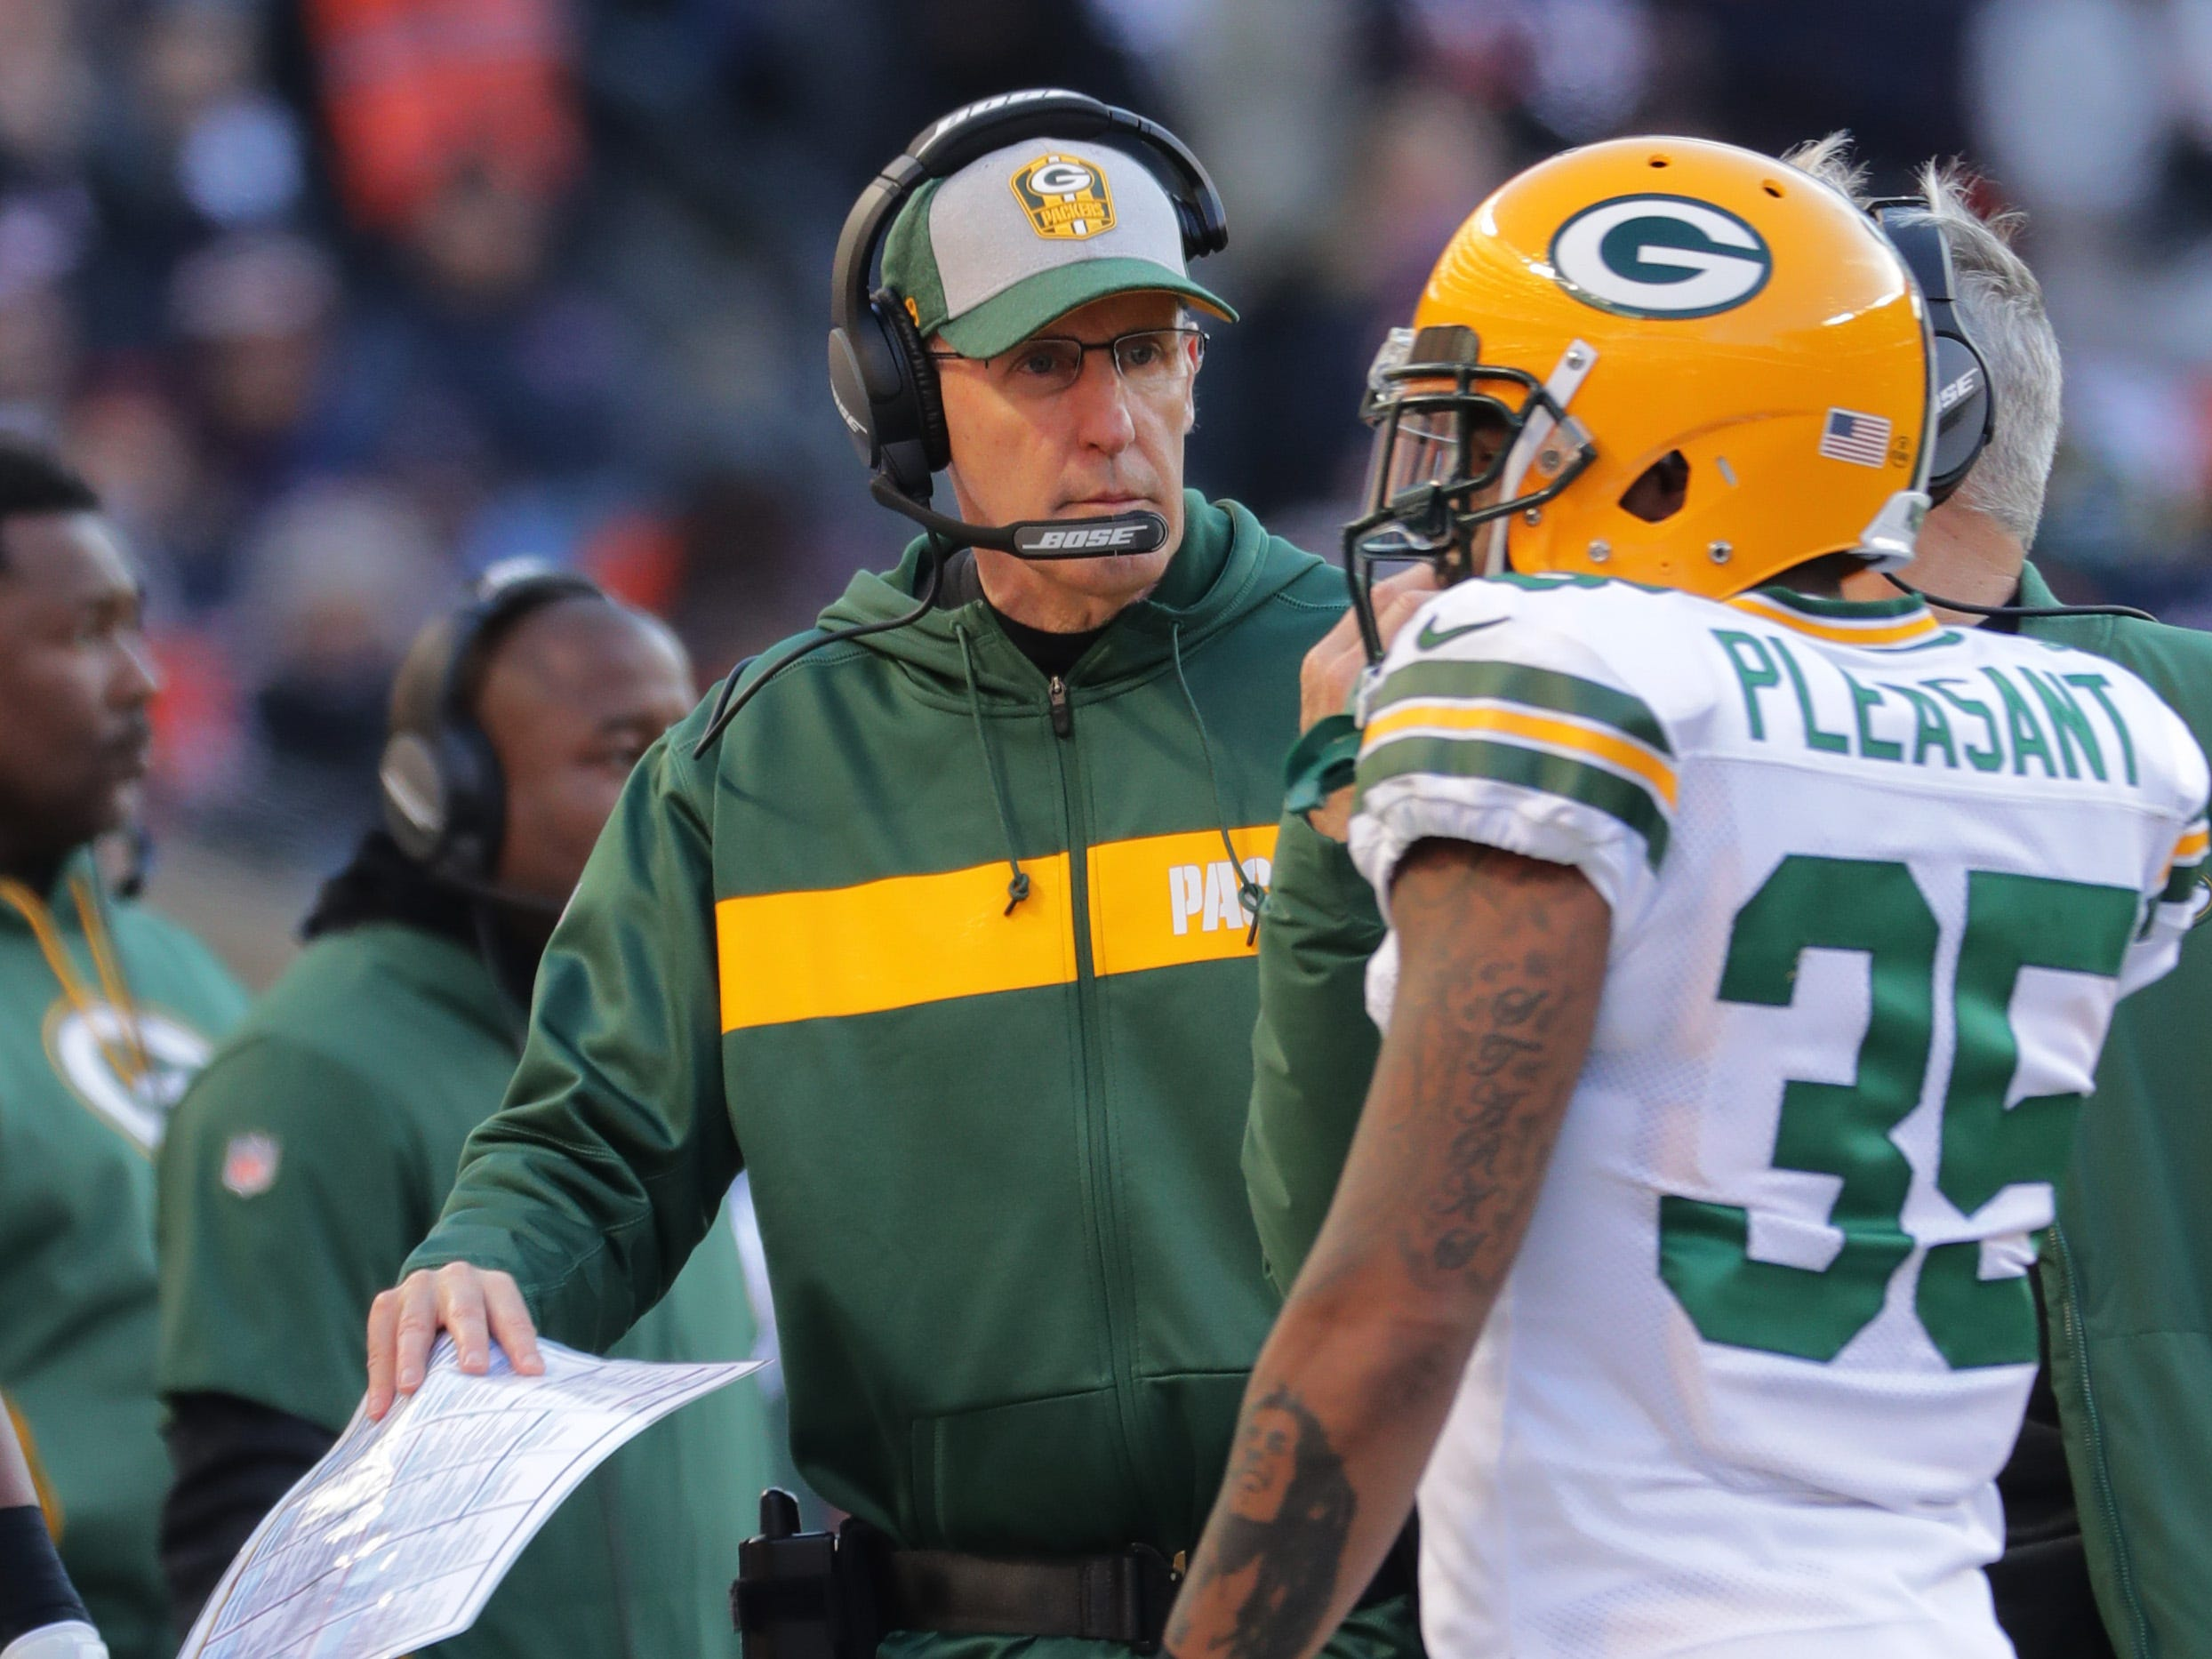 Green Bay Packers head coach Joe Philbin is shown during the fourth quarter of their game against the Chicago Bears Sunday, December 25, 2018 at Soldier Field in Chicago, Ill. The Chicago Bears beat the Green Bay Packers 24-17.  MARK HOFFMAN/MILWAUKEE JOURNAL SENTINEL